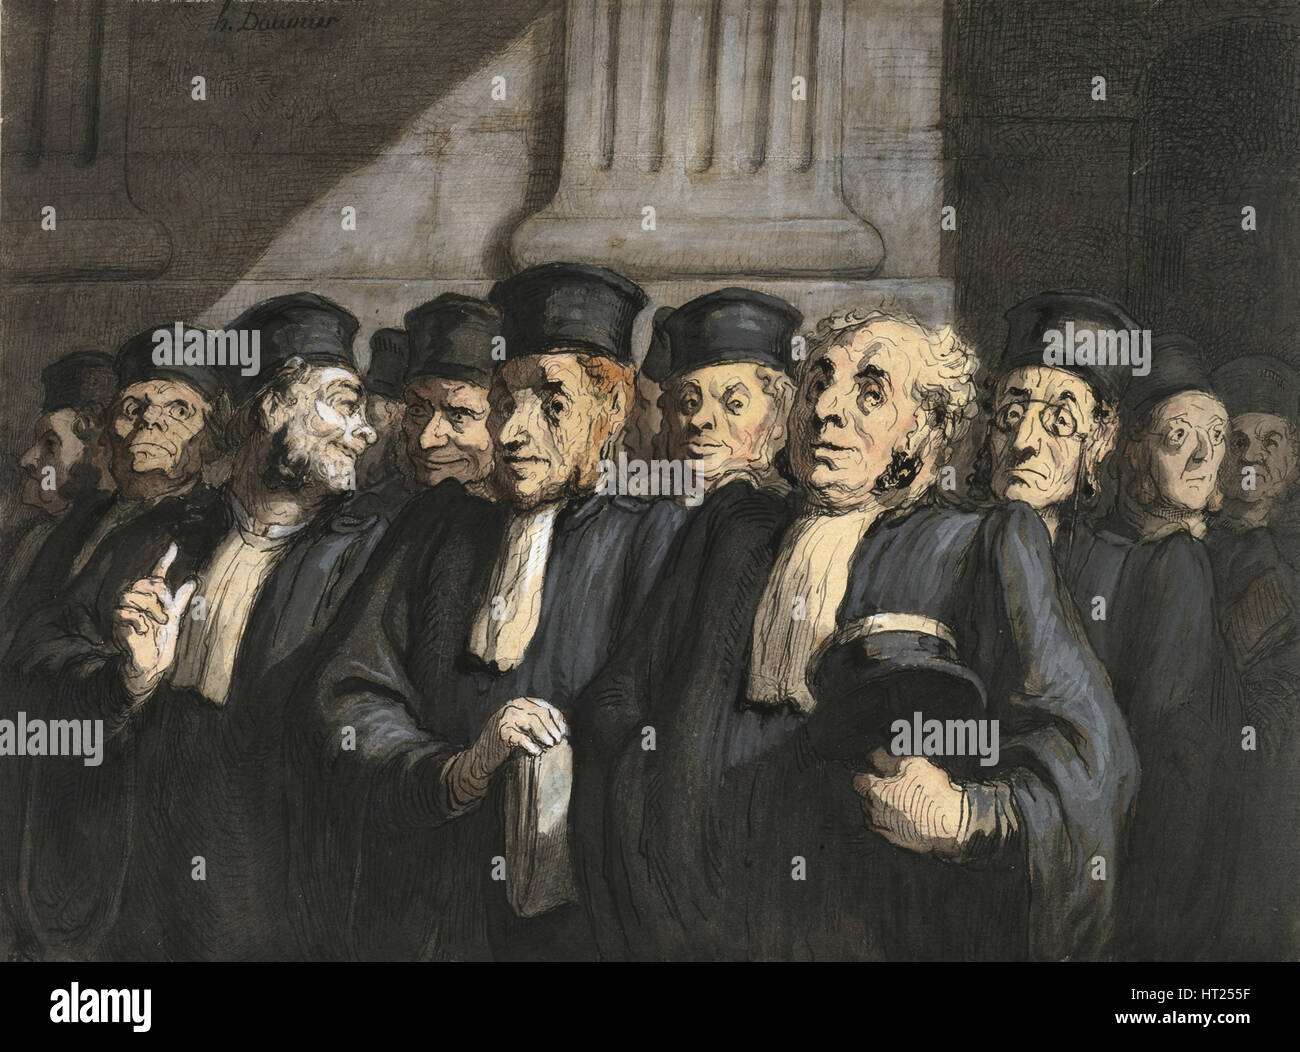 The Lawyers for the Prosecution, Early 1860s. Artist: Daumier, Honoré (1808-1879) - Stock Image